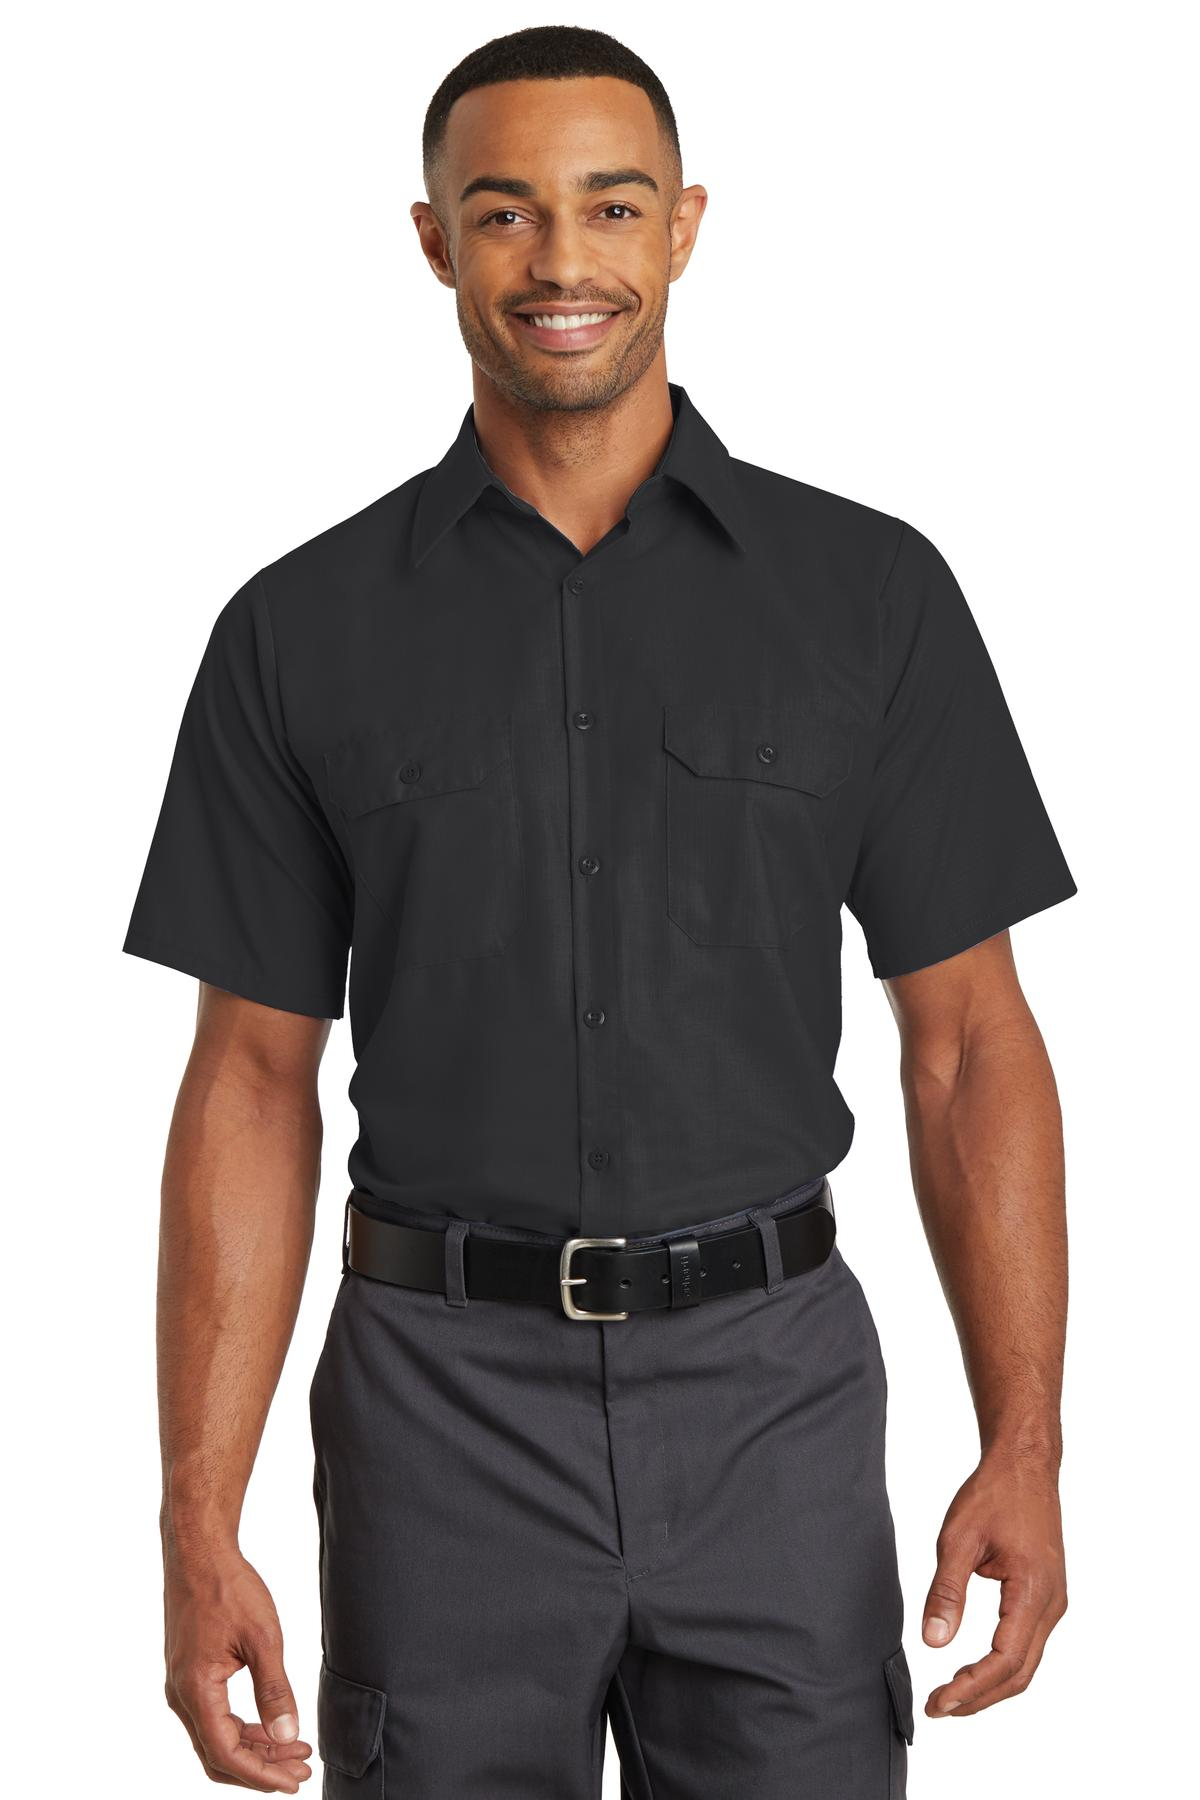 Red Kap ®  Short Sleeve Solid Ripstop Shirt. SY60 - Black